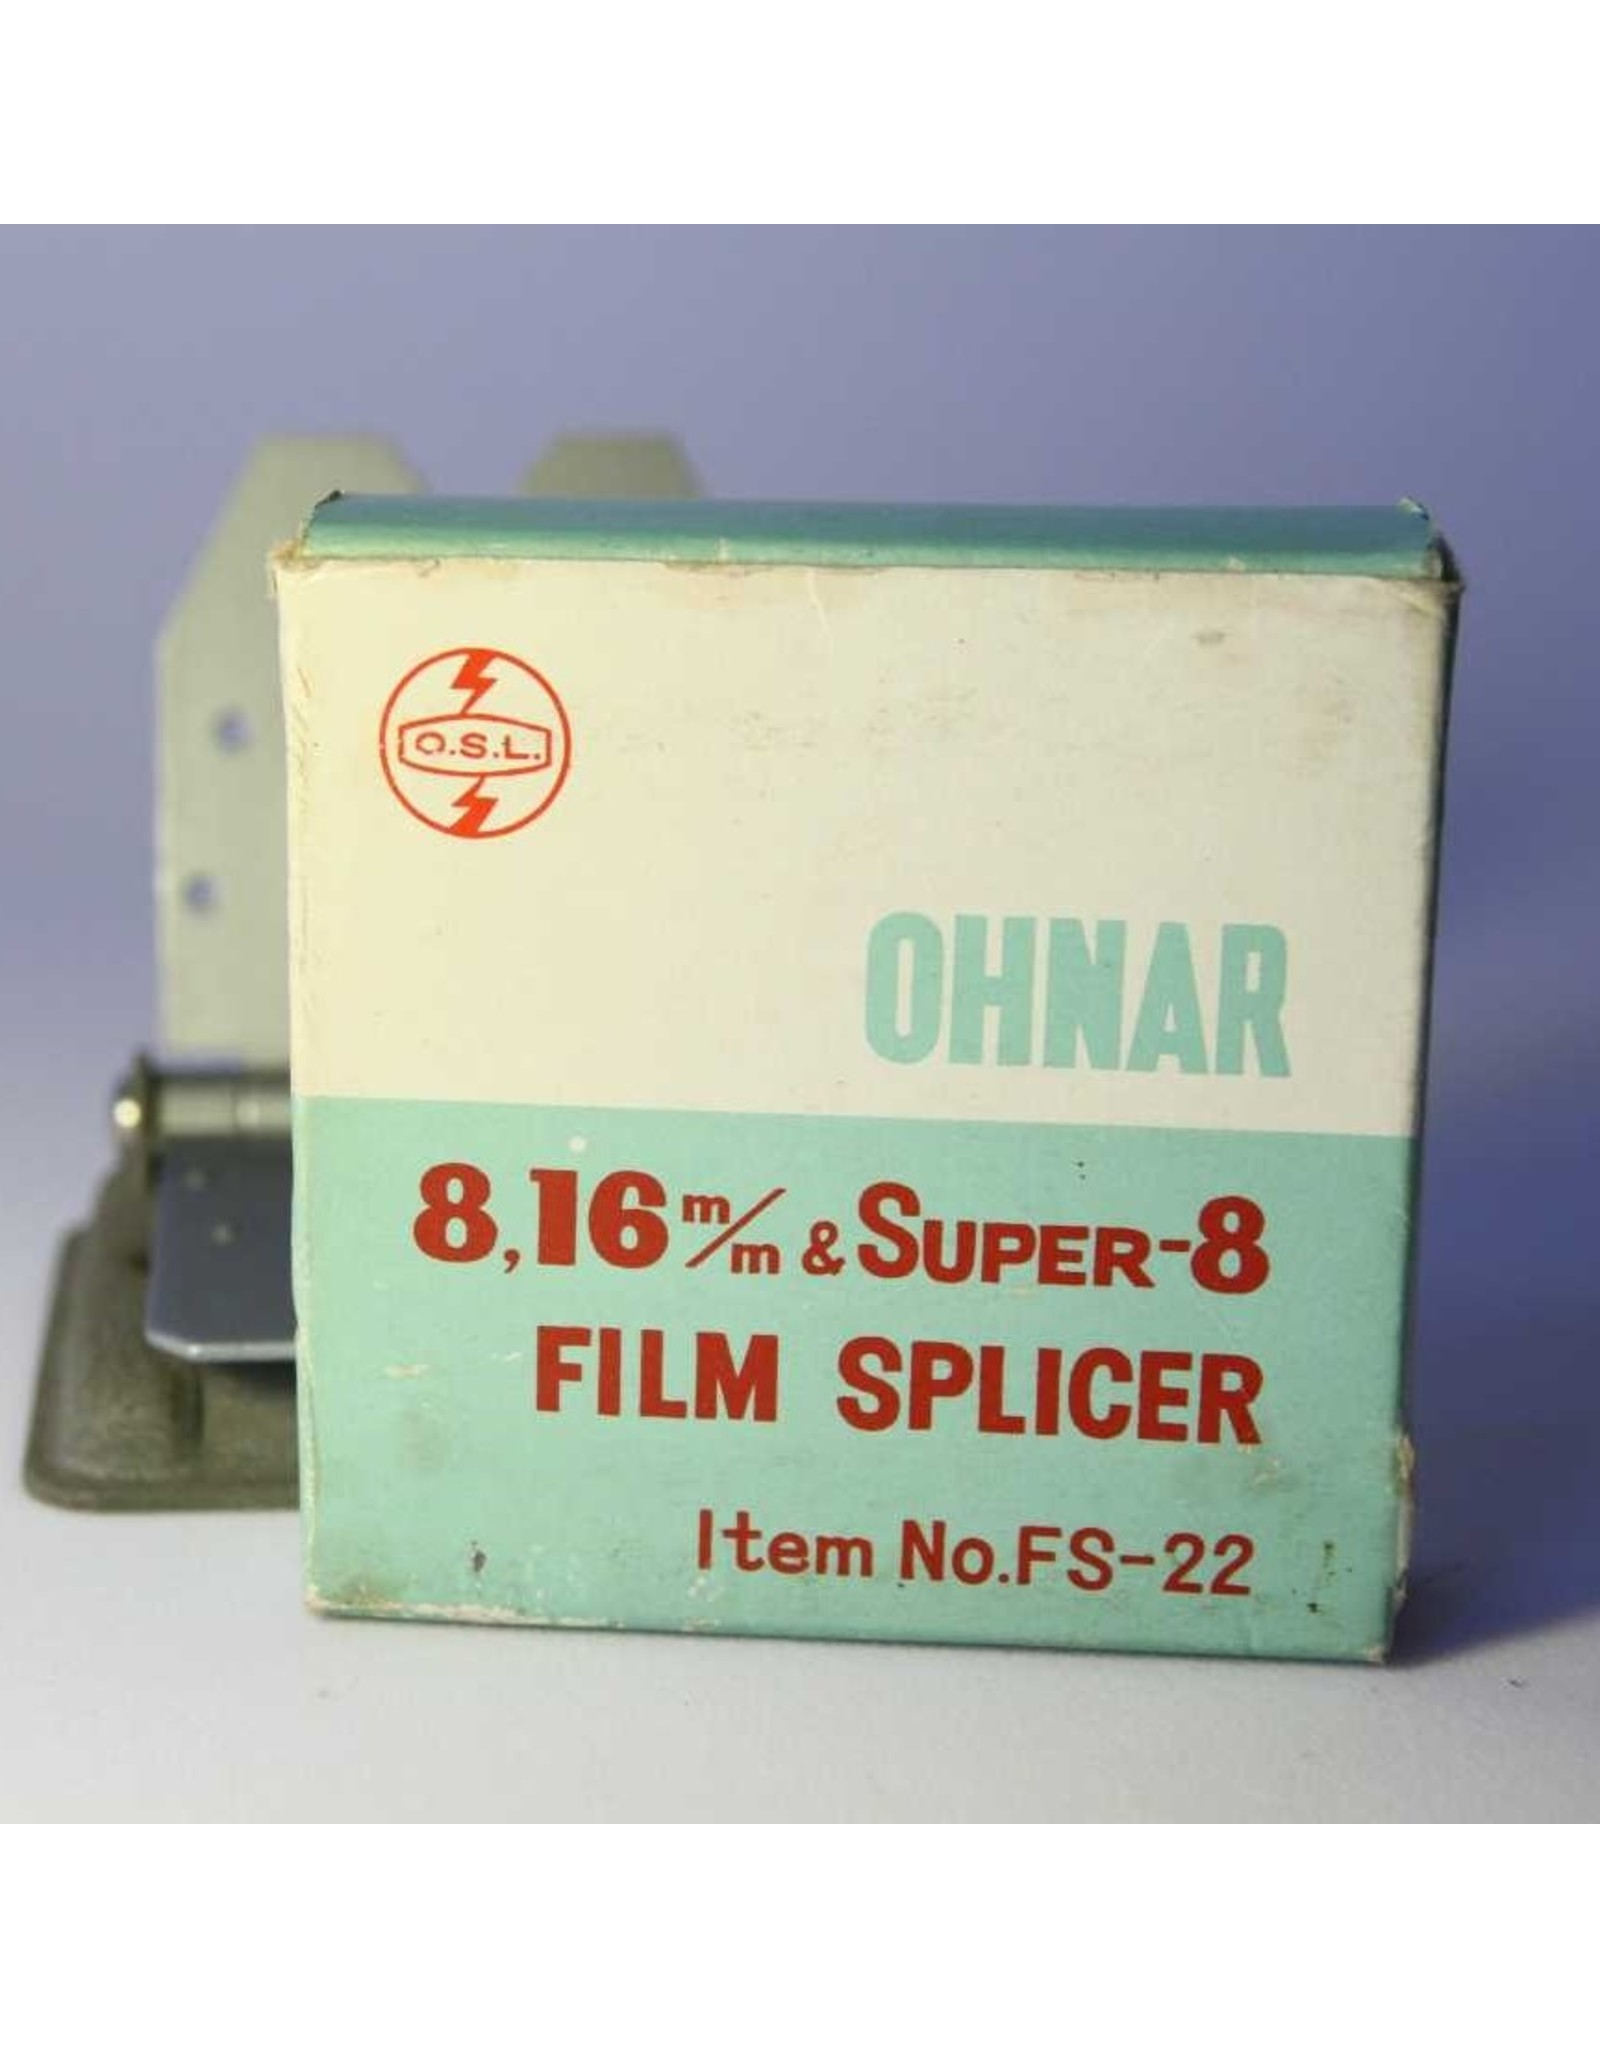 Film splicer - 8mm